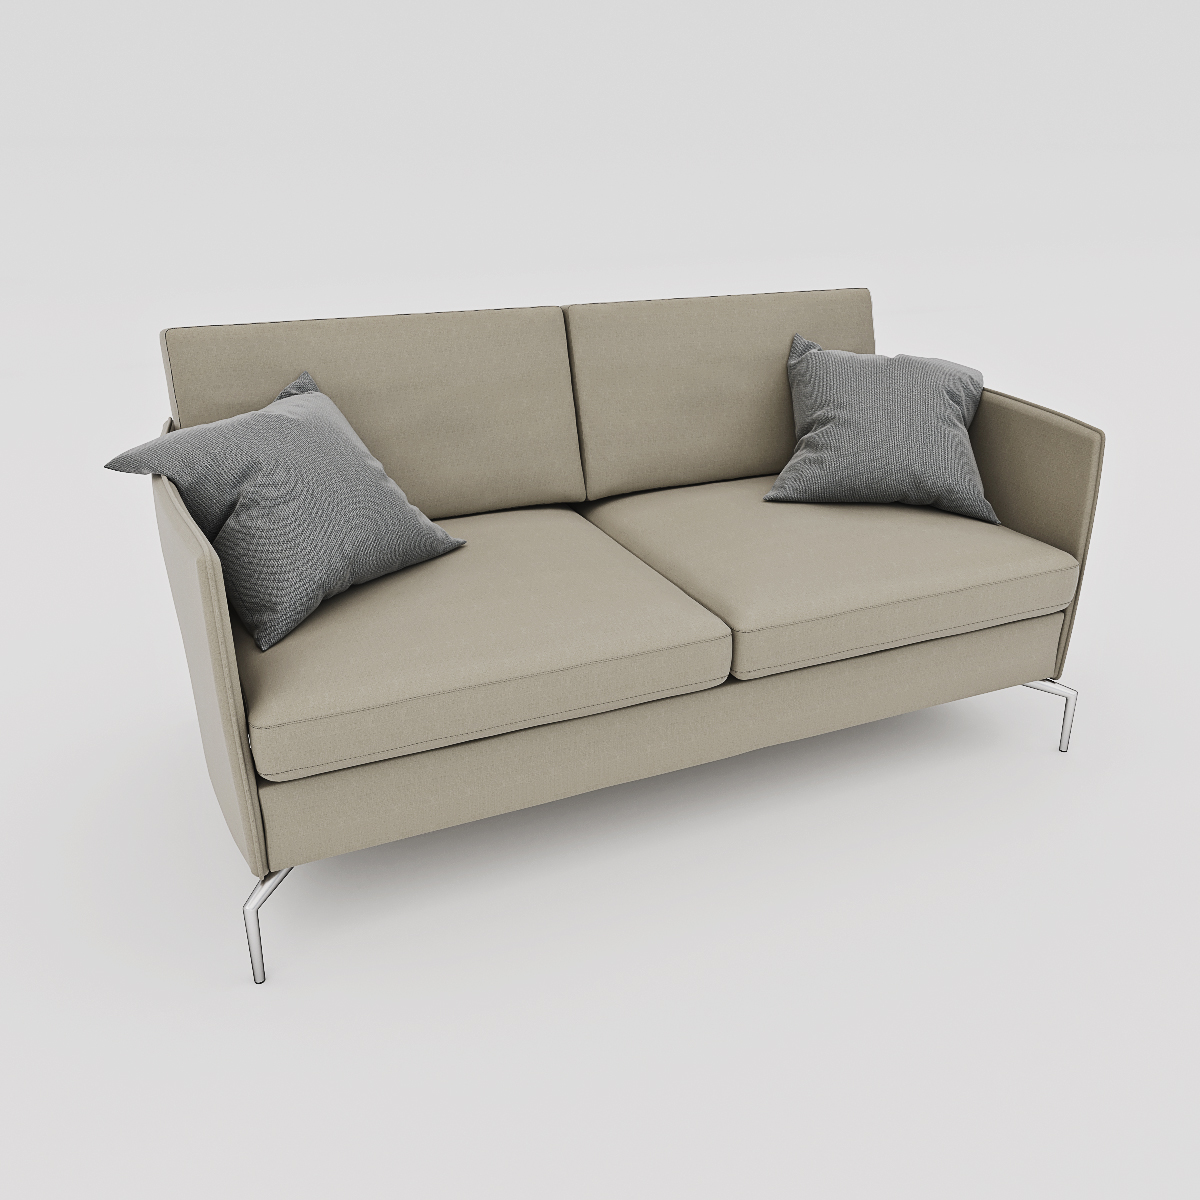 Sofa Boconcept Osaka By Andygonch Ocean